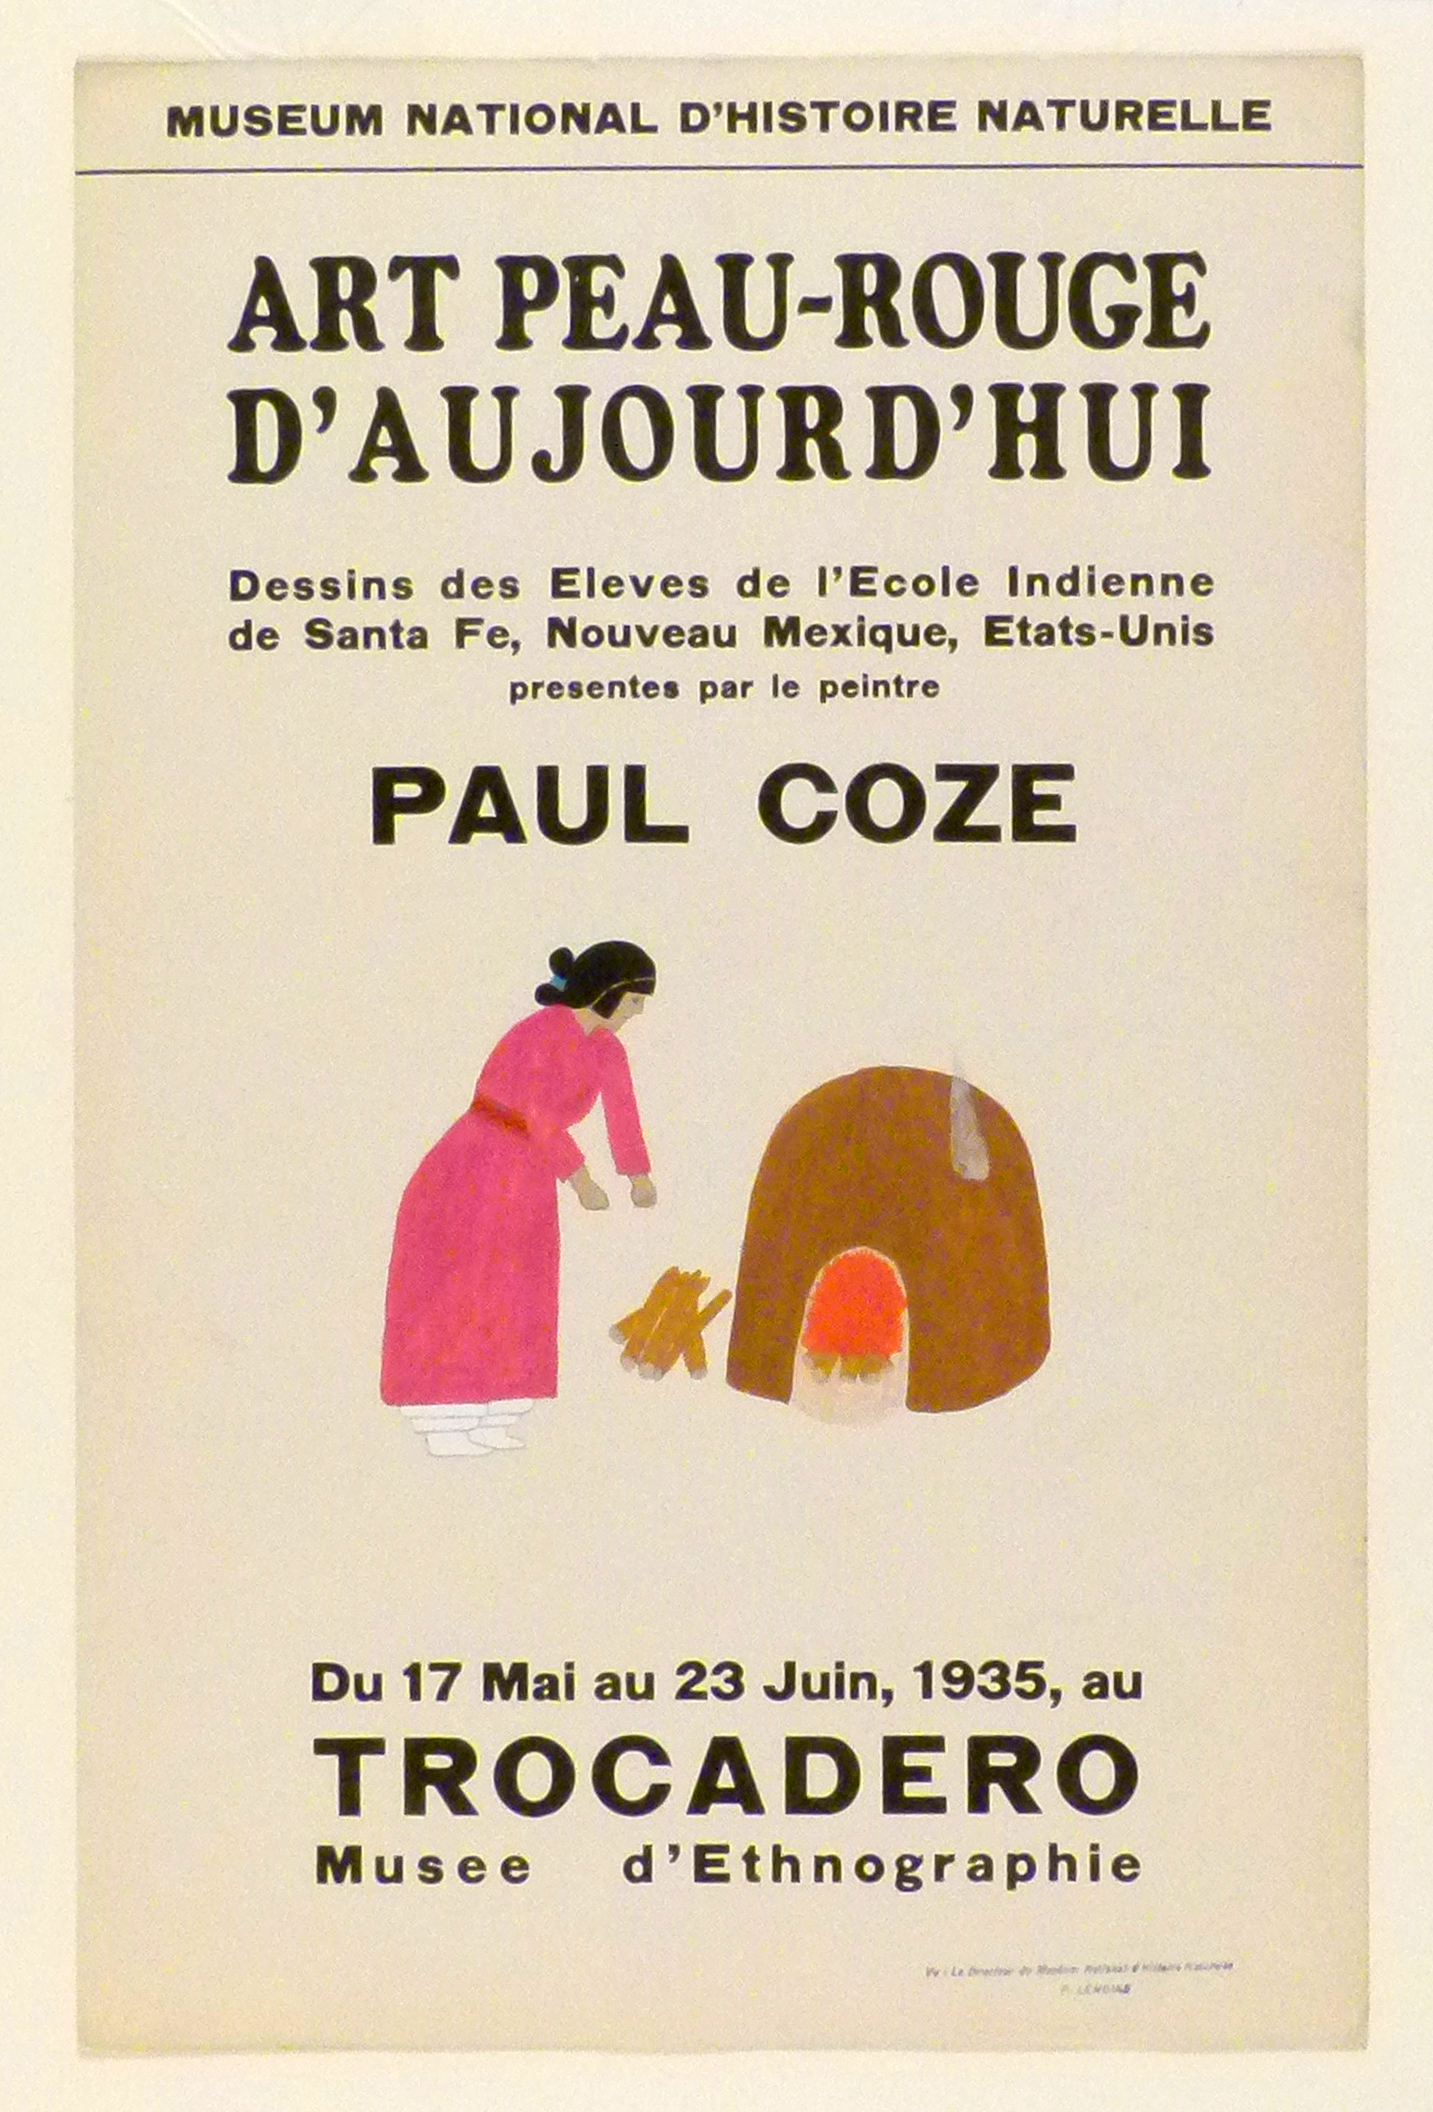 Art Exhibition Poster with painting of standing figure clothed in a pink dress, leaning toward a pile of logs. A small oven with a fire inside appears on the right.